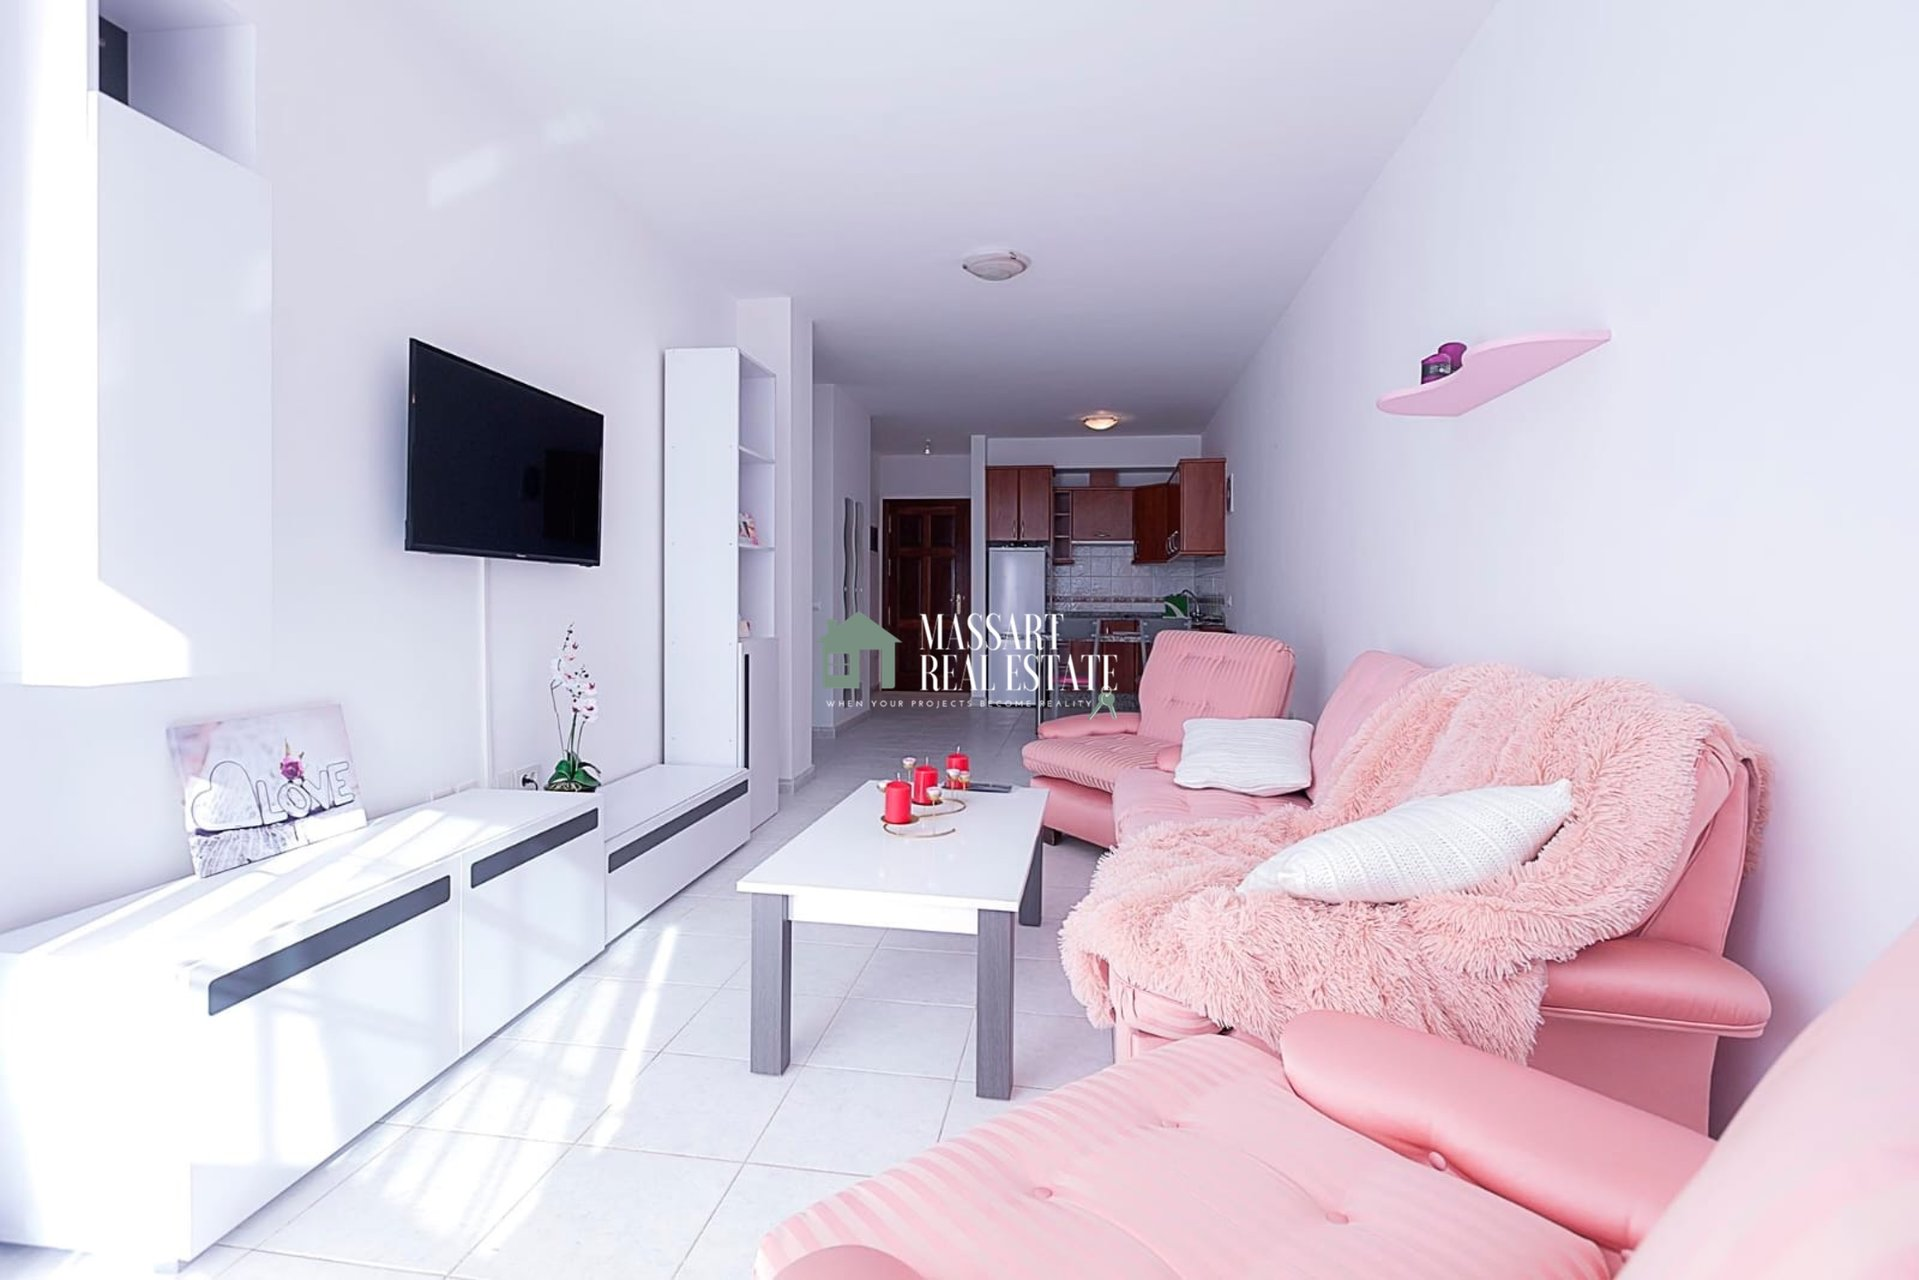 YOUR OPPORTUNITY IN SAN ISIDRO! For sale in Los Cardones (San Isidro), furnished apartment of 40 m2 ideal as a habitual residence or as a profitable investment.